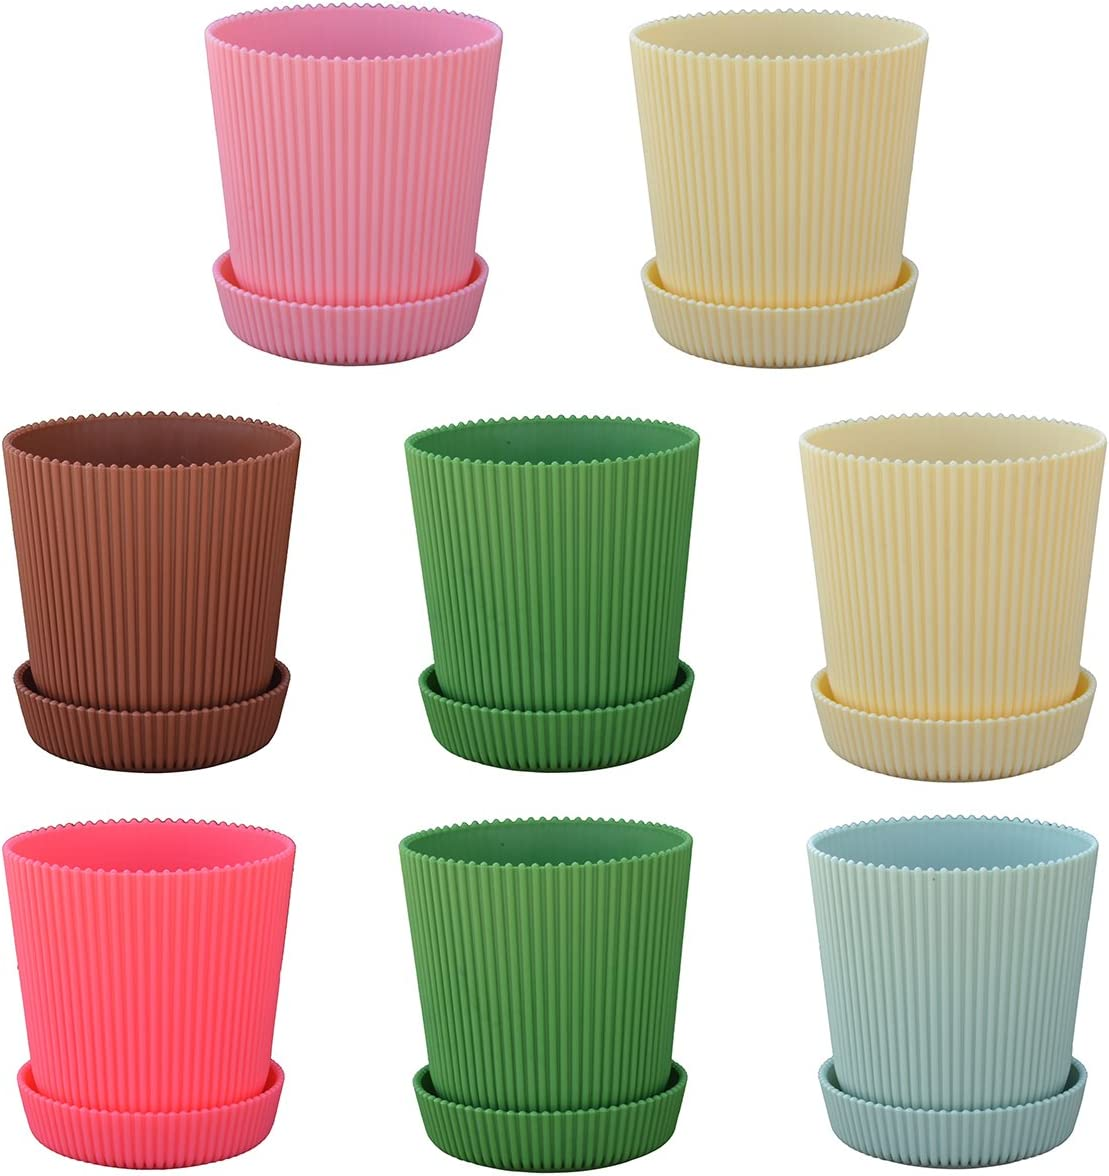 LUXEHOME Adorable Flower Pot with Drainage Hole Sturdy and Durable Plant Pot with Sauce Bright and Attractive Color, Set of 8